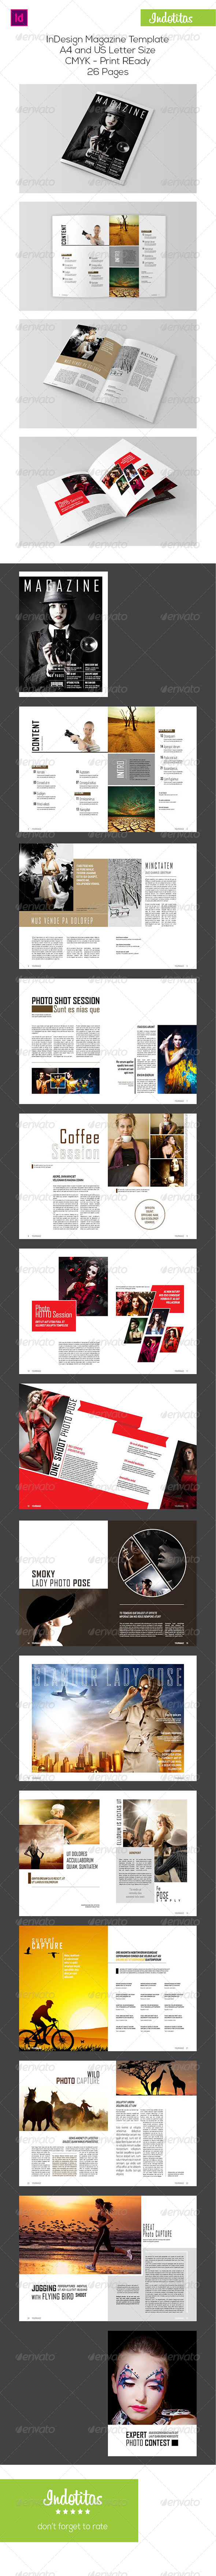 GraphicRiver InDesign Magazine Template 7586419